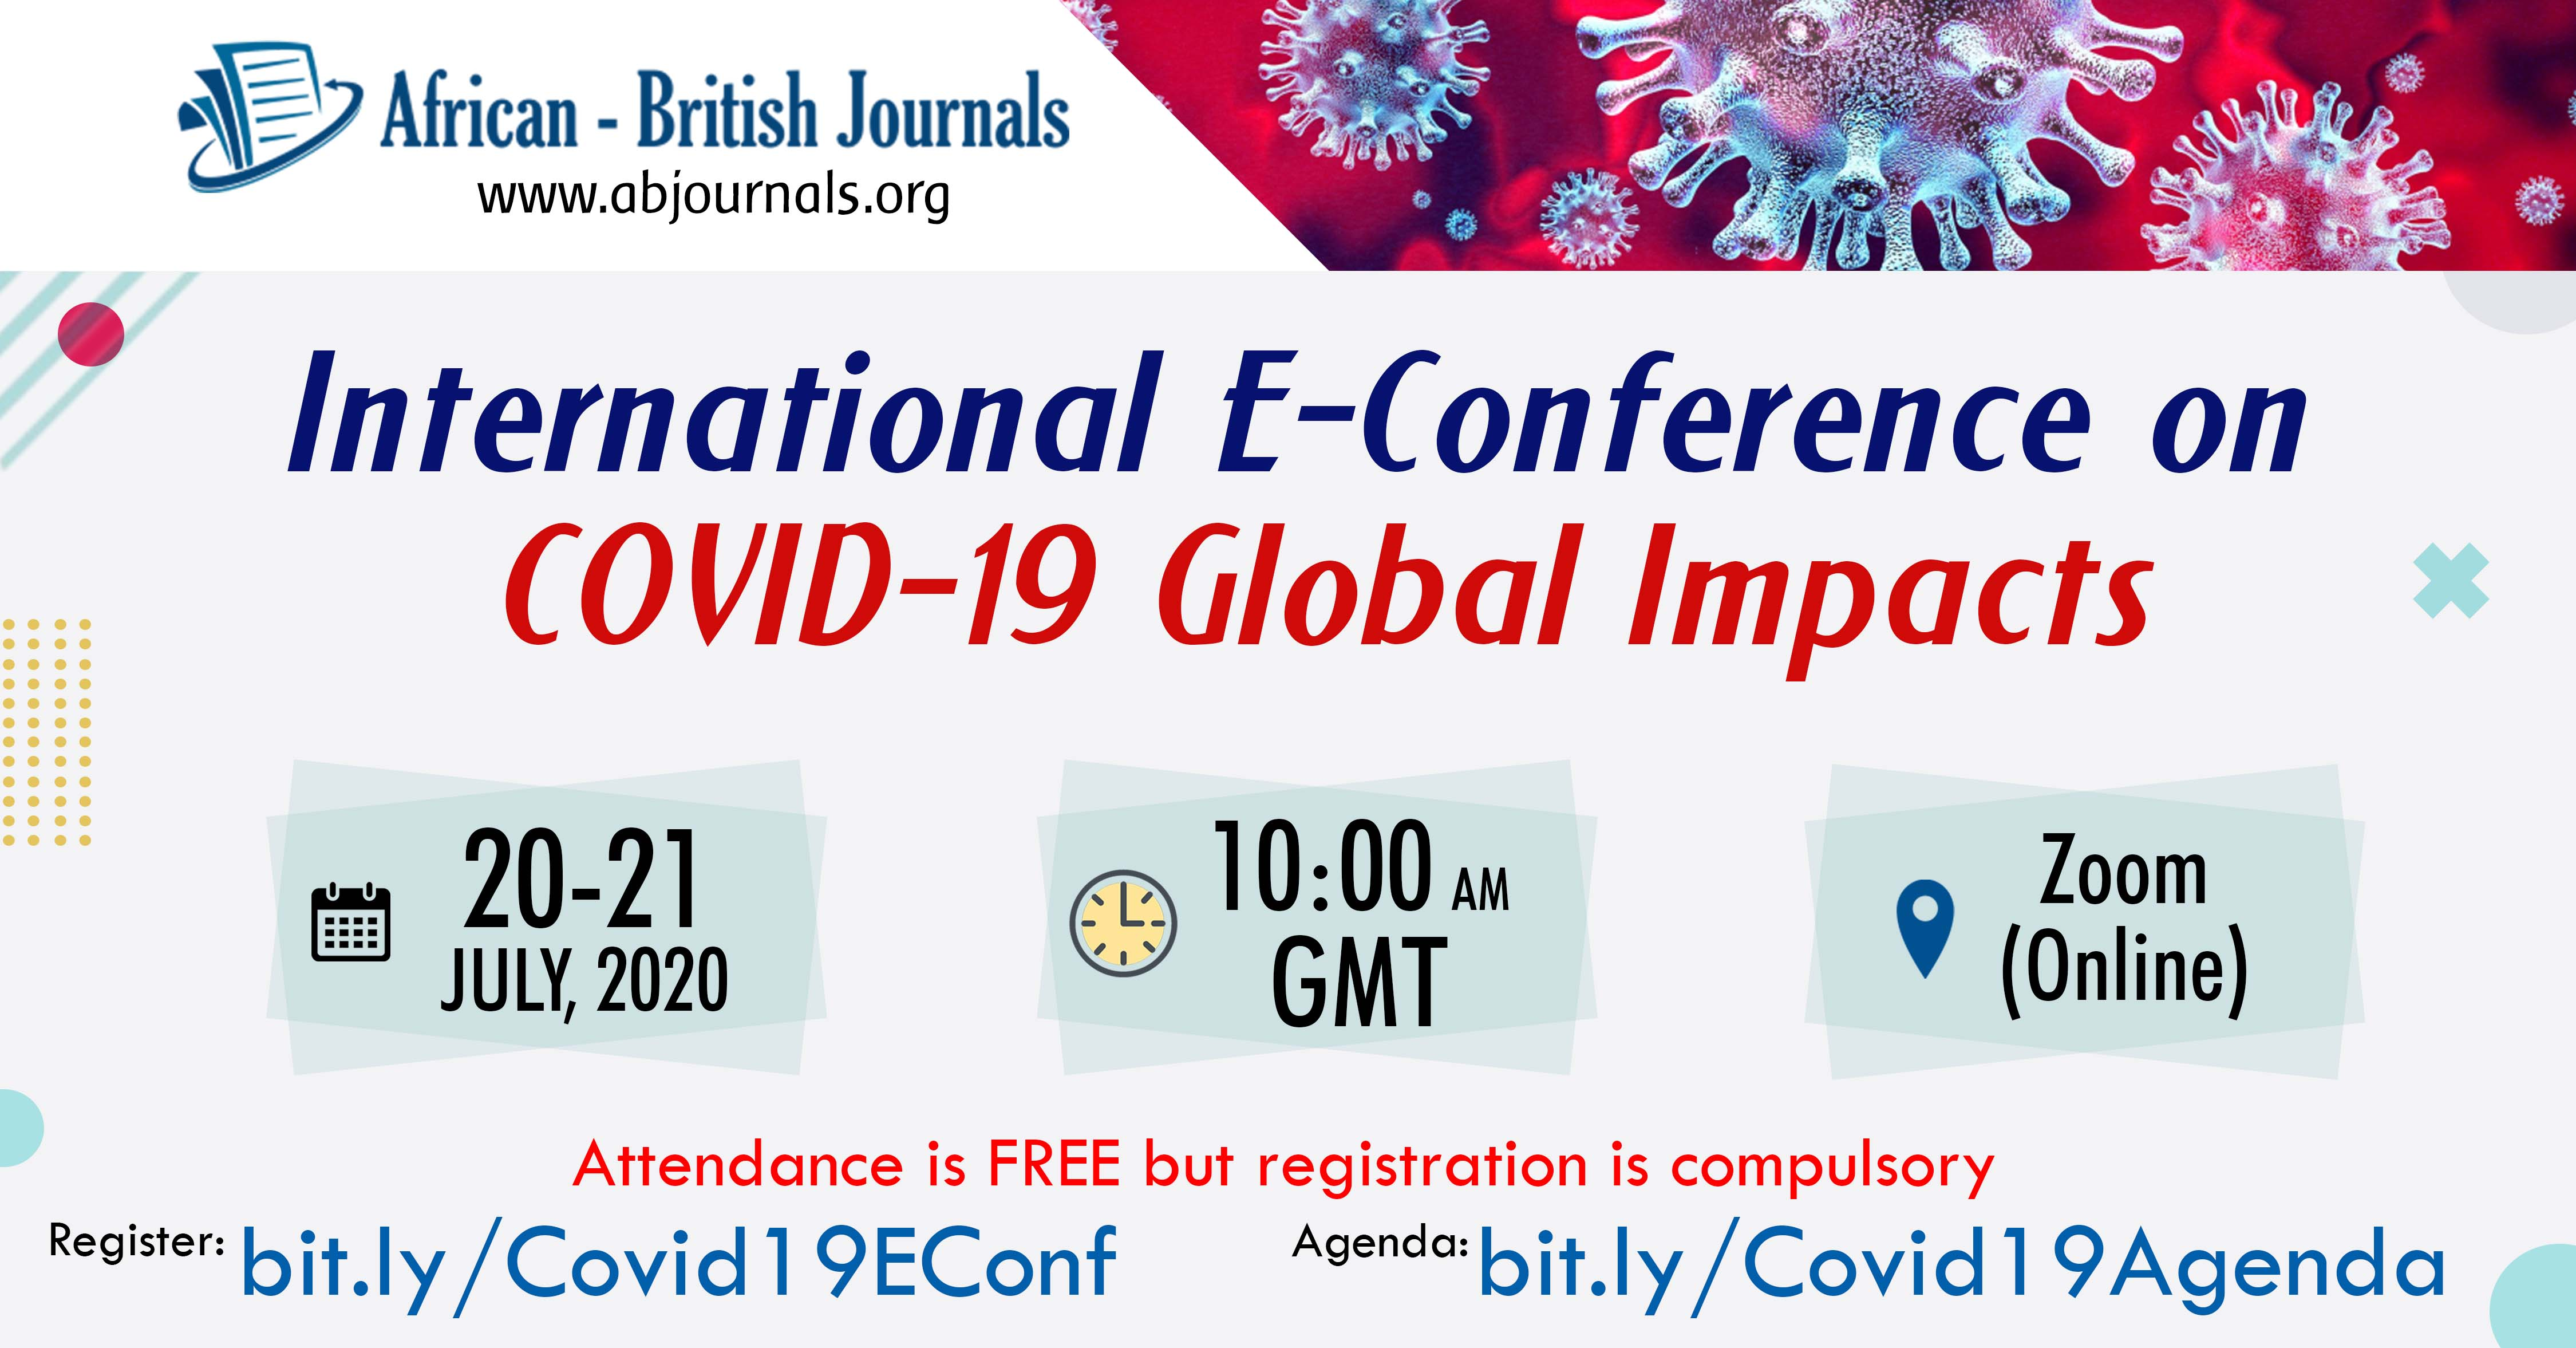 Covid 19 Global Impact Conference